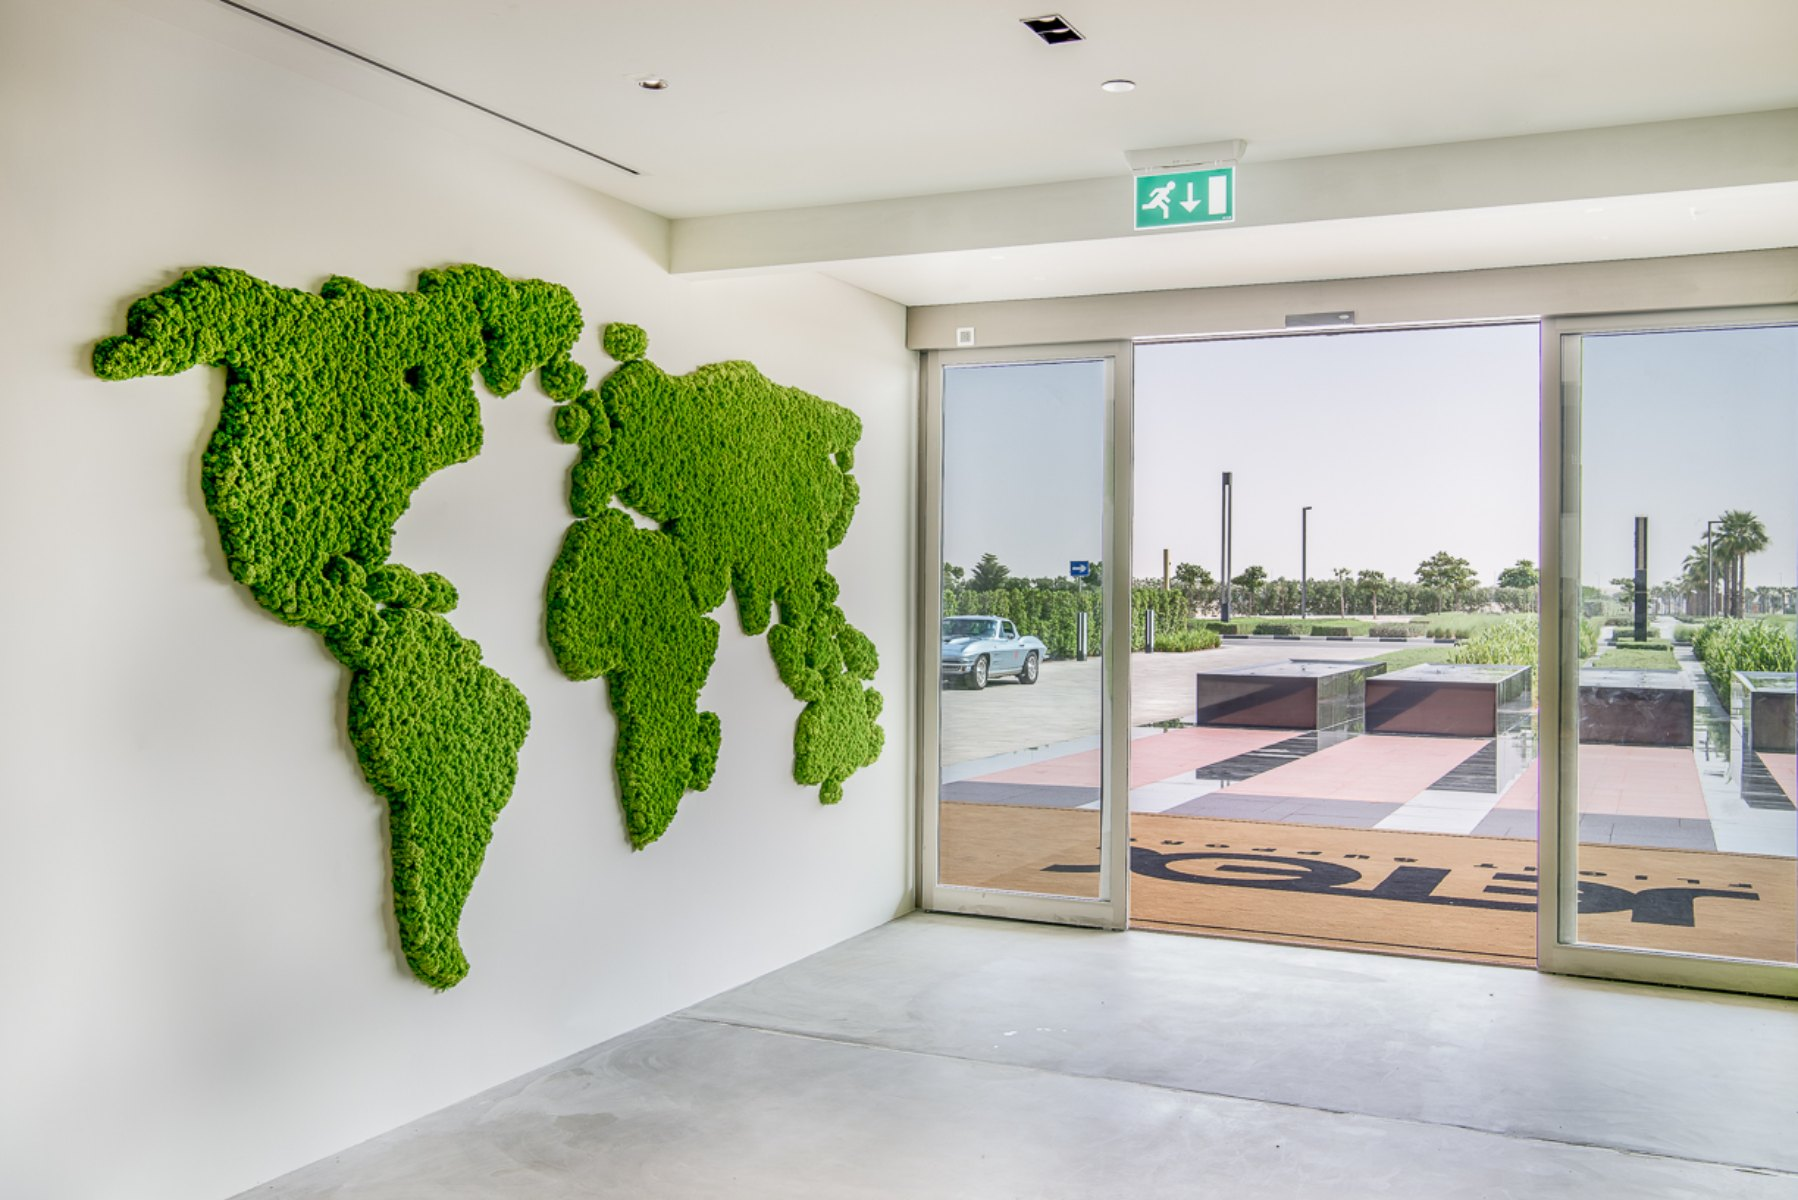 World Map made of Moss from Planters